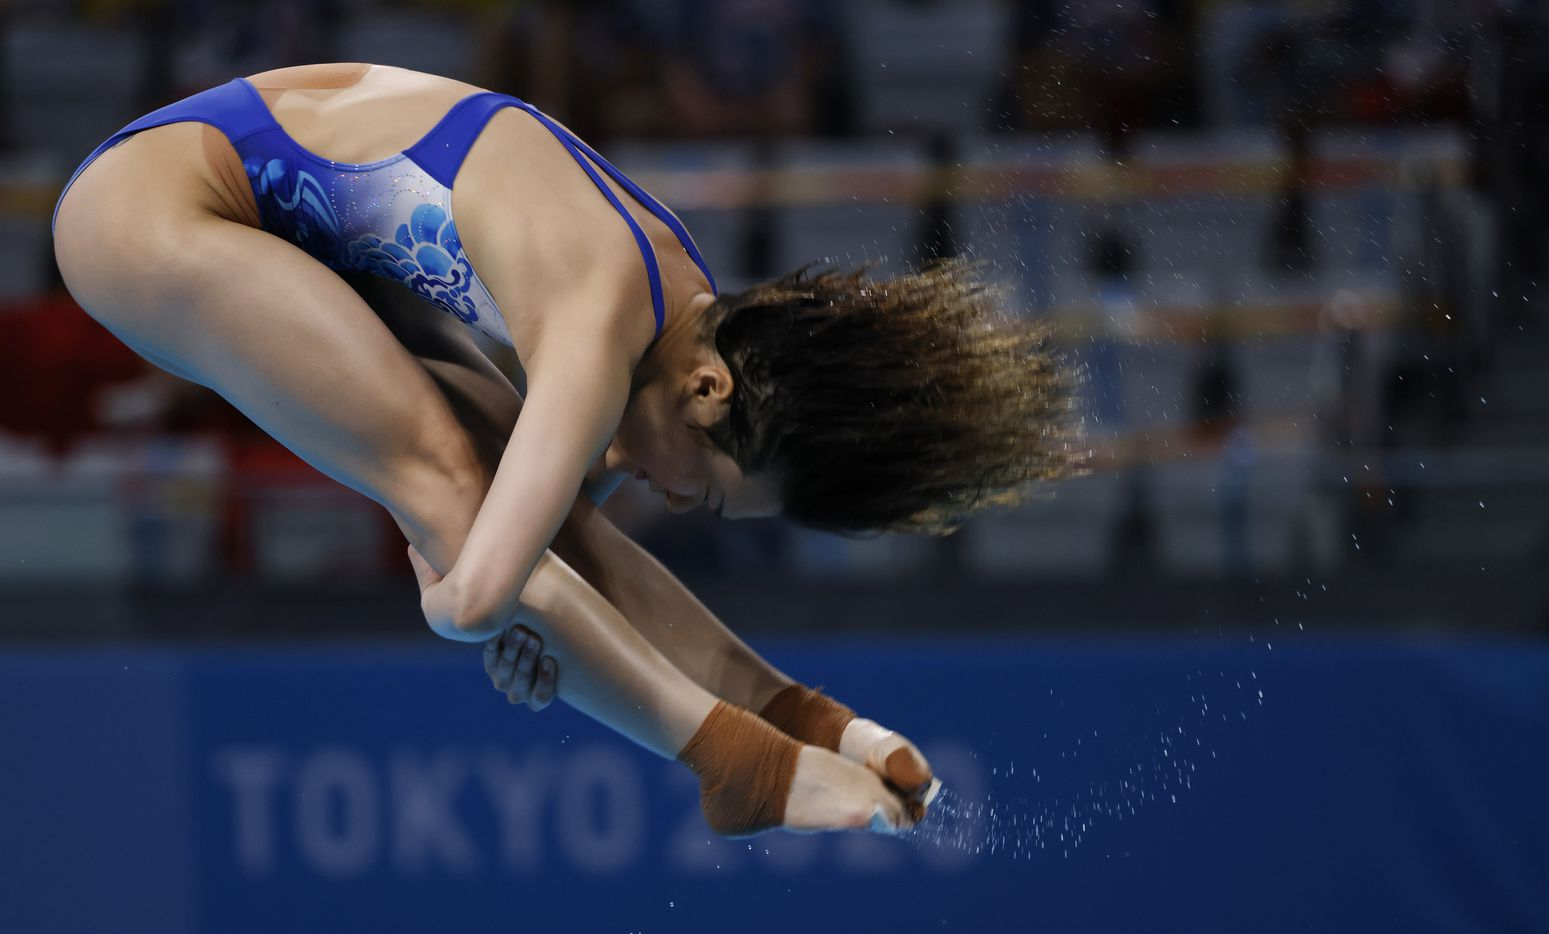 China's Shi Tingmao competes in the women's 3 meter springboard preliminary competition during the postponed 2020 Tokyo Olympics at Tokyo Aquatics Centre, on Friday, July 30, 2021, in Tokyo, Japan. (Vernon Bryant/The Dallas Morning News)